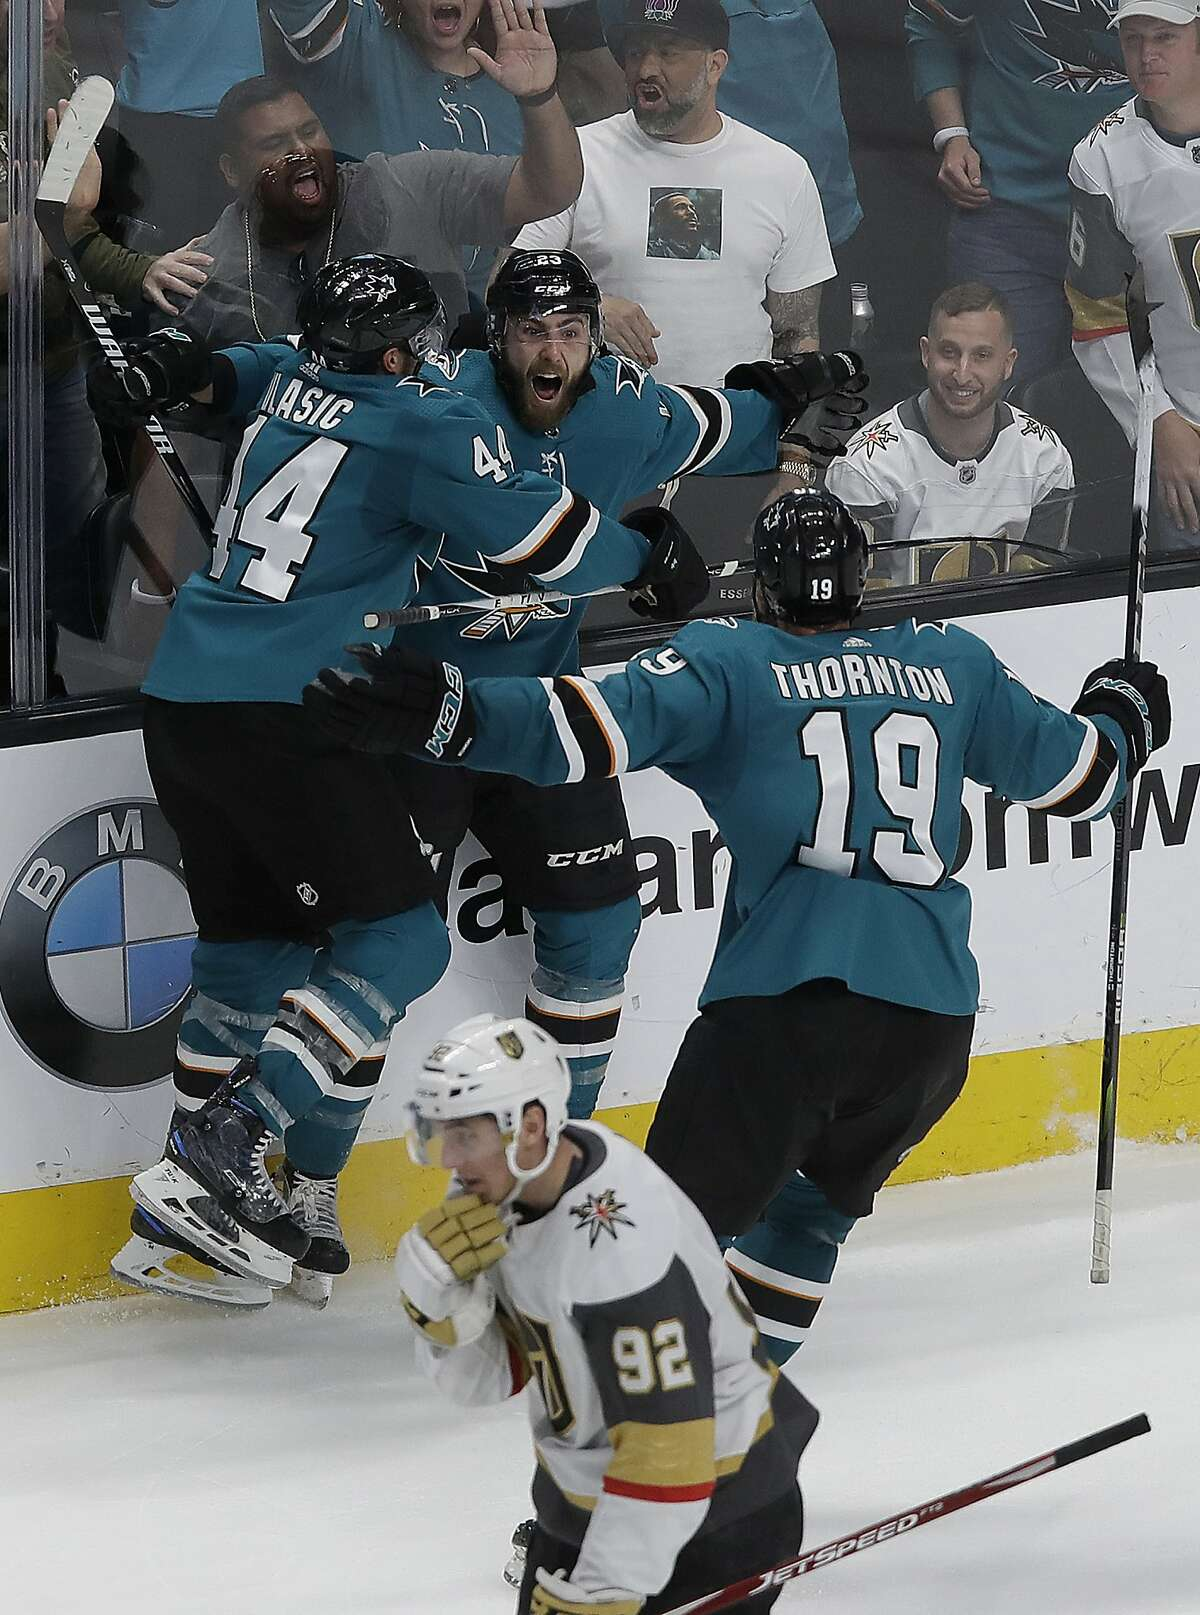 San Jose Sharks right wing Barclay Goodrow, center, is congratulated by defenseman Marc-Edouard Vlasic (44) and center Joe Thornton (19) after scoring the winning goal against the Vegas Golden Knights during overtime of Game 7 of an NHL hockey first-round playoff series in San Jose, Calif., Tuesday, April 23, 2019. Pictured at bottom is Golden Knights left wing Tomas Nosek (92). (AP Photo/Jeff Chiu)